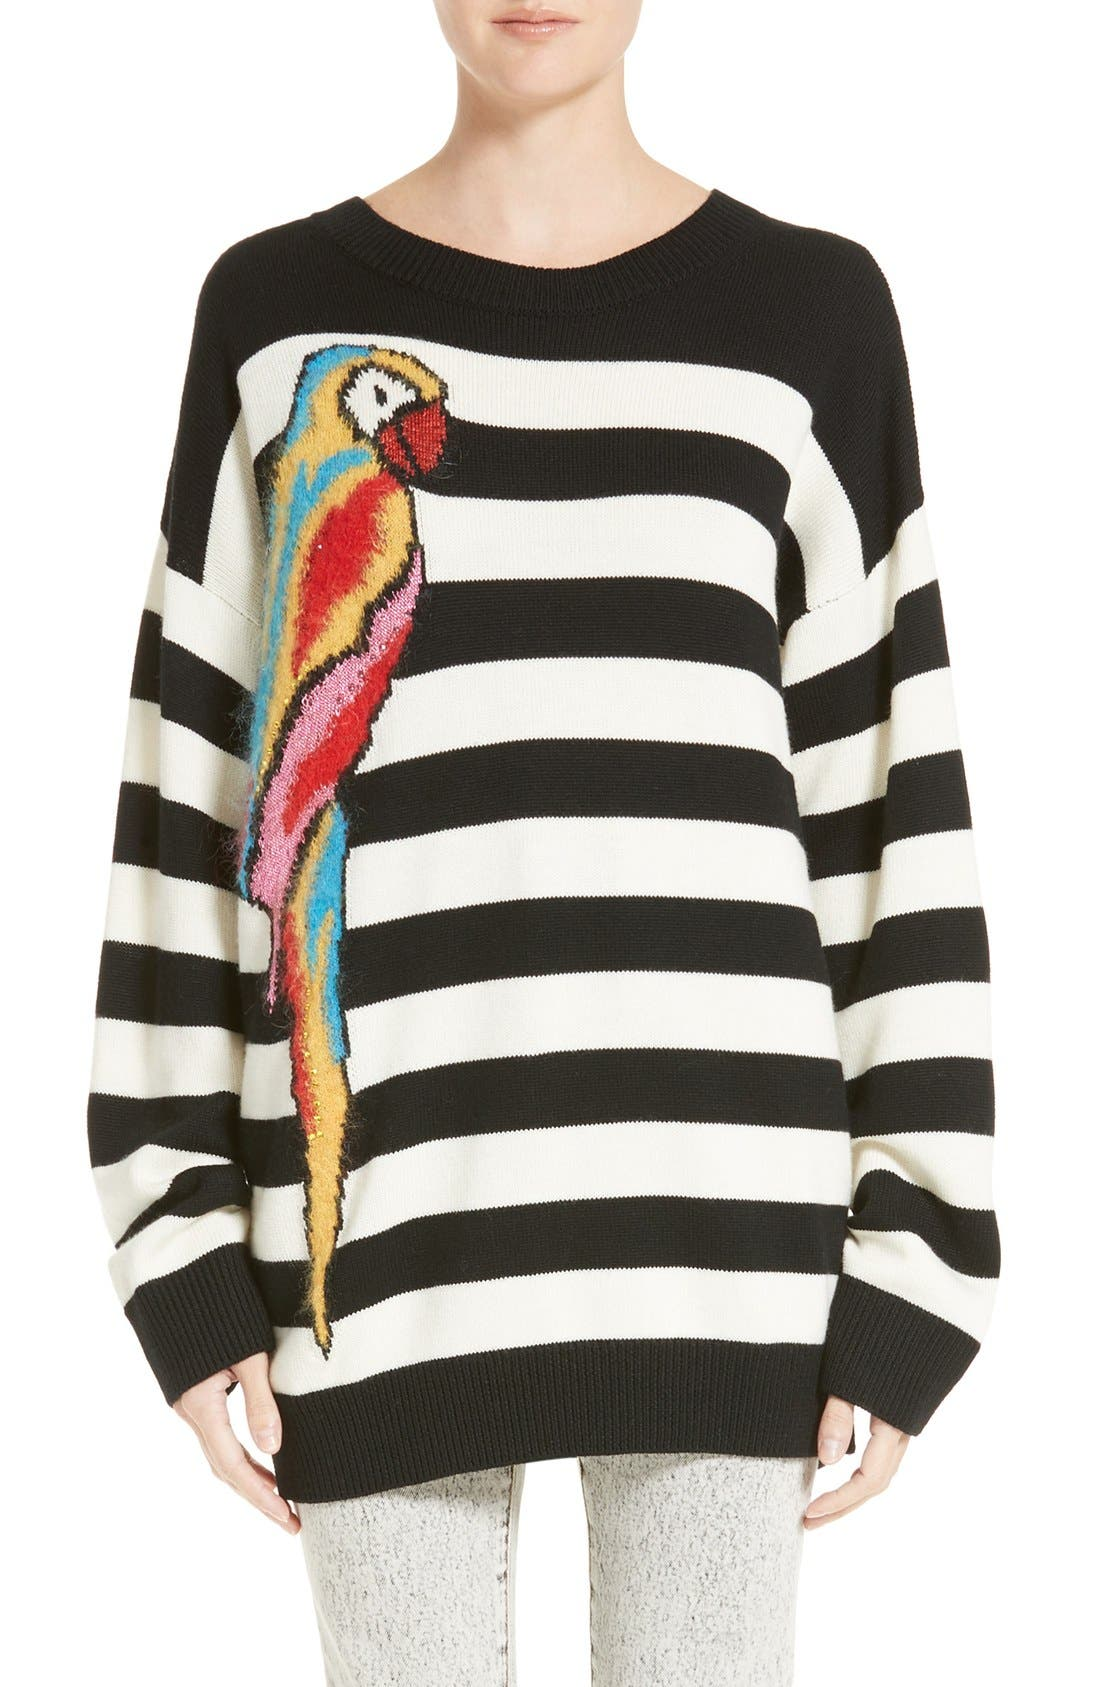 Main Image - MARC JACOBS Parrot Jacquard Sweater